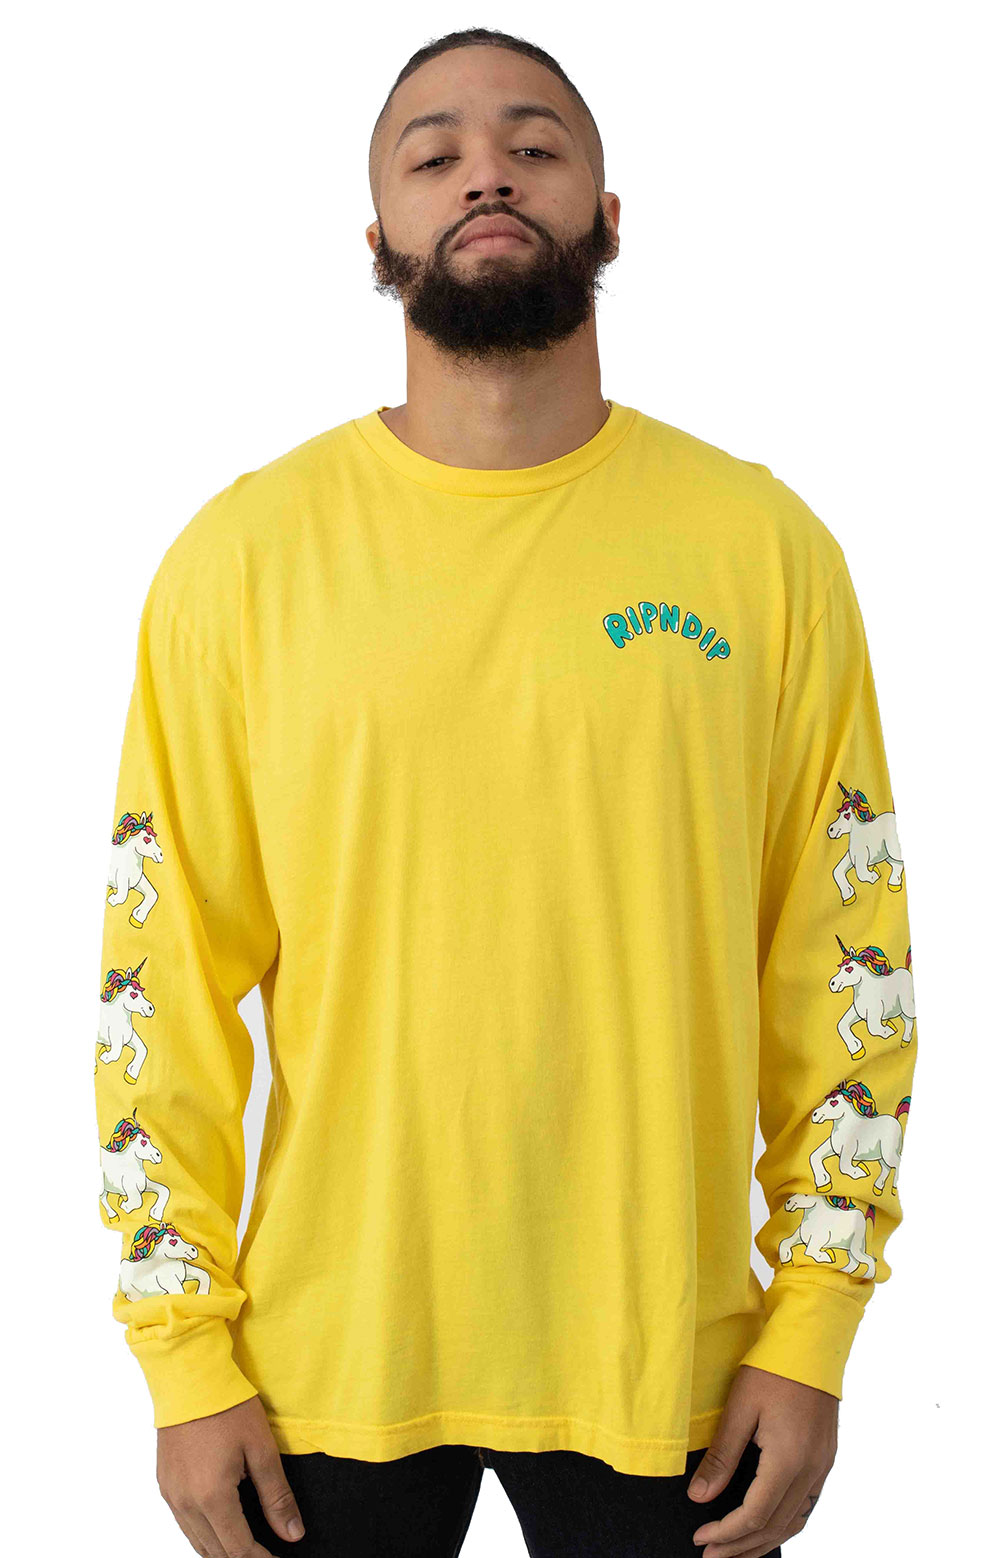 Nermland L/S Shirt - Yellow